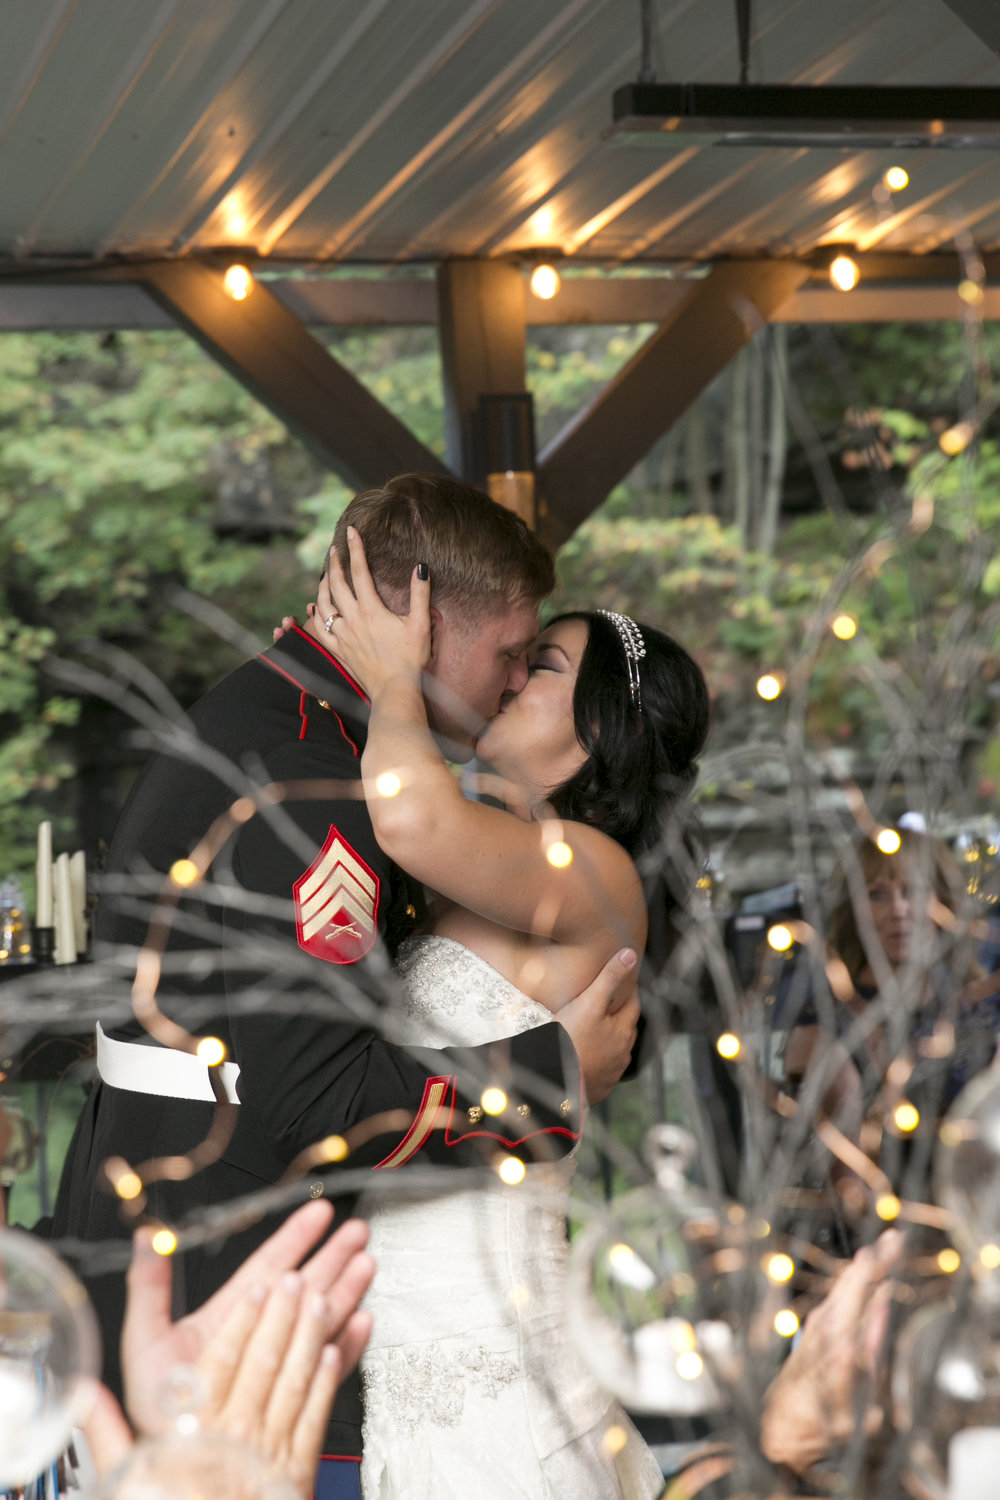 It's so hard not to cry when the first dance plays! #imnotcryingyourecrying !